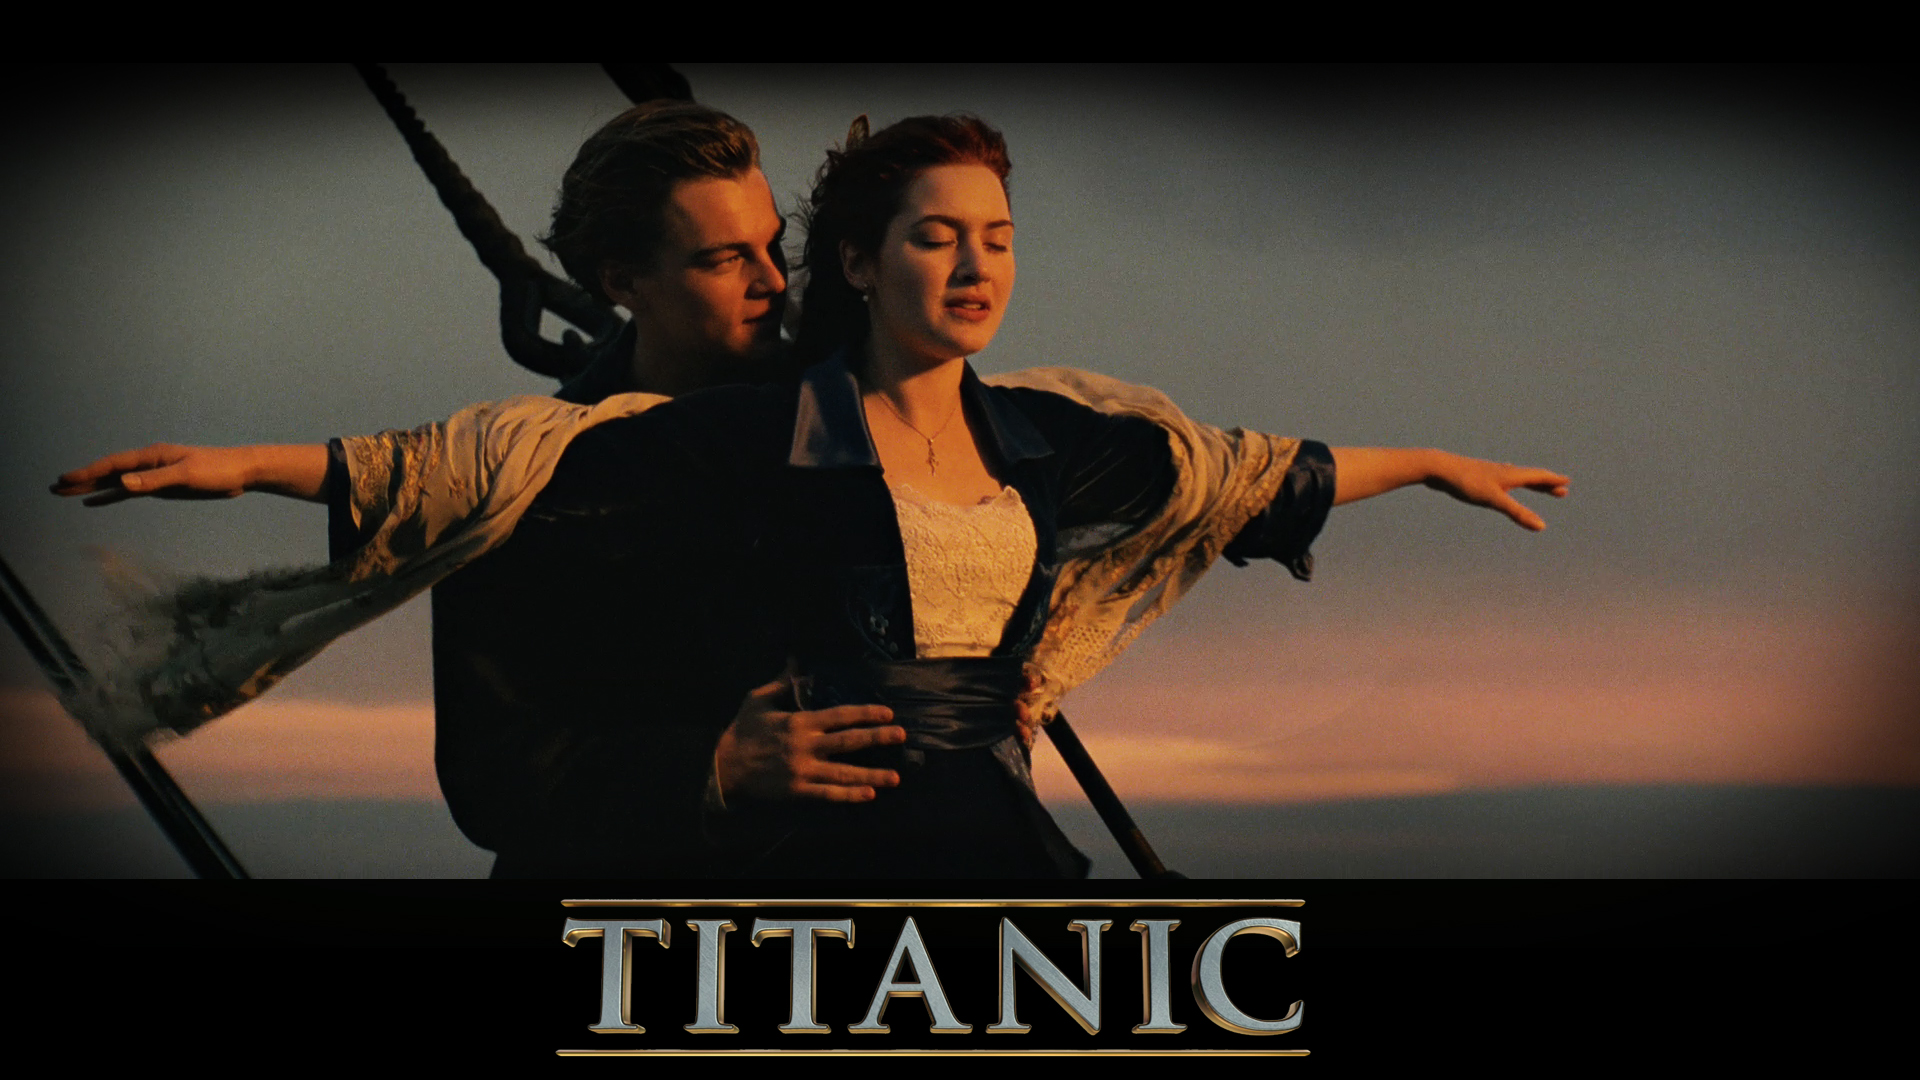 Titanic movie wallpaper free wallpaper world - Jack and rose pics ...